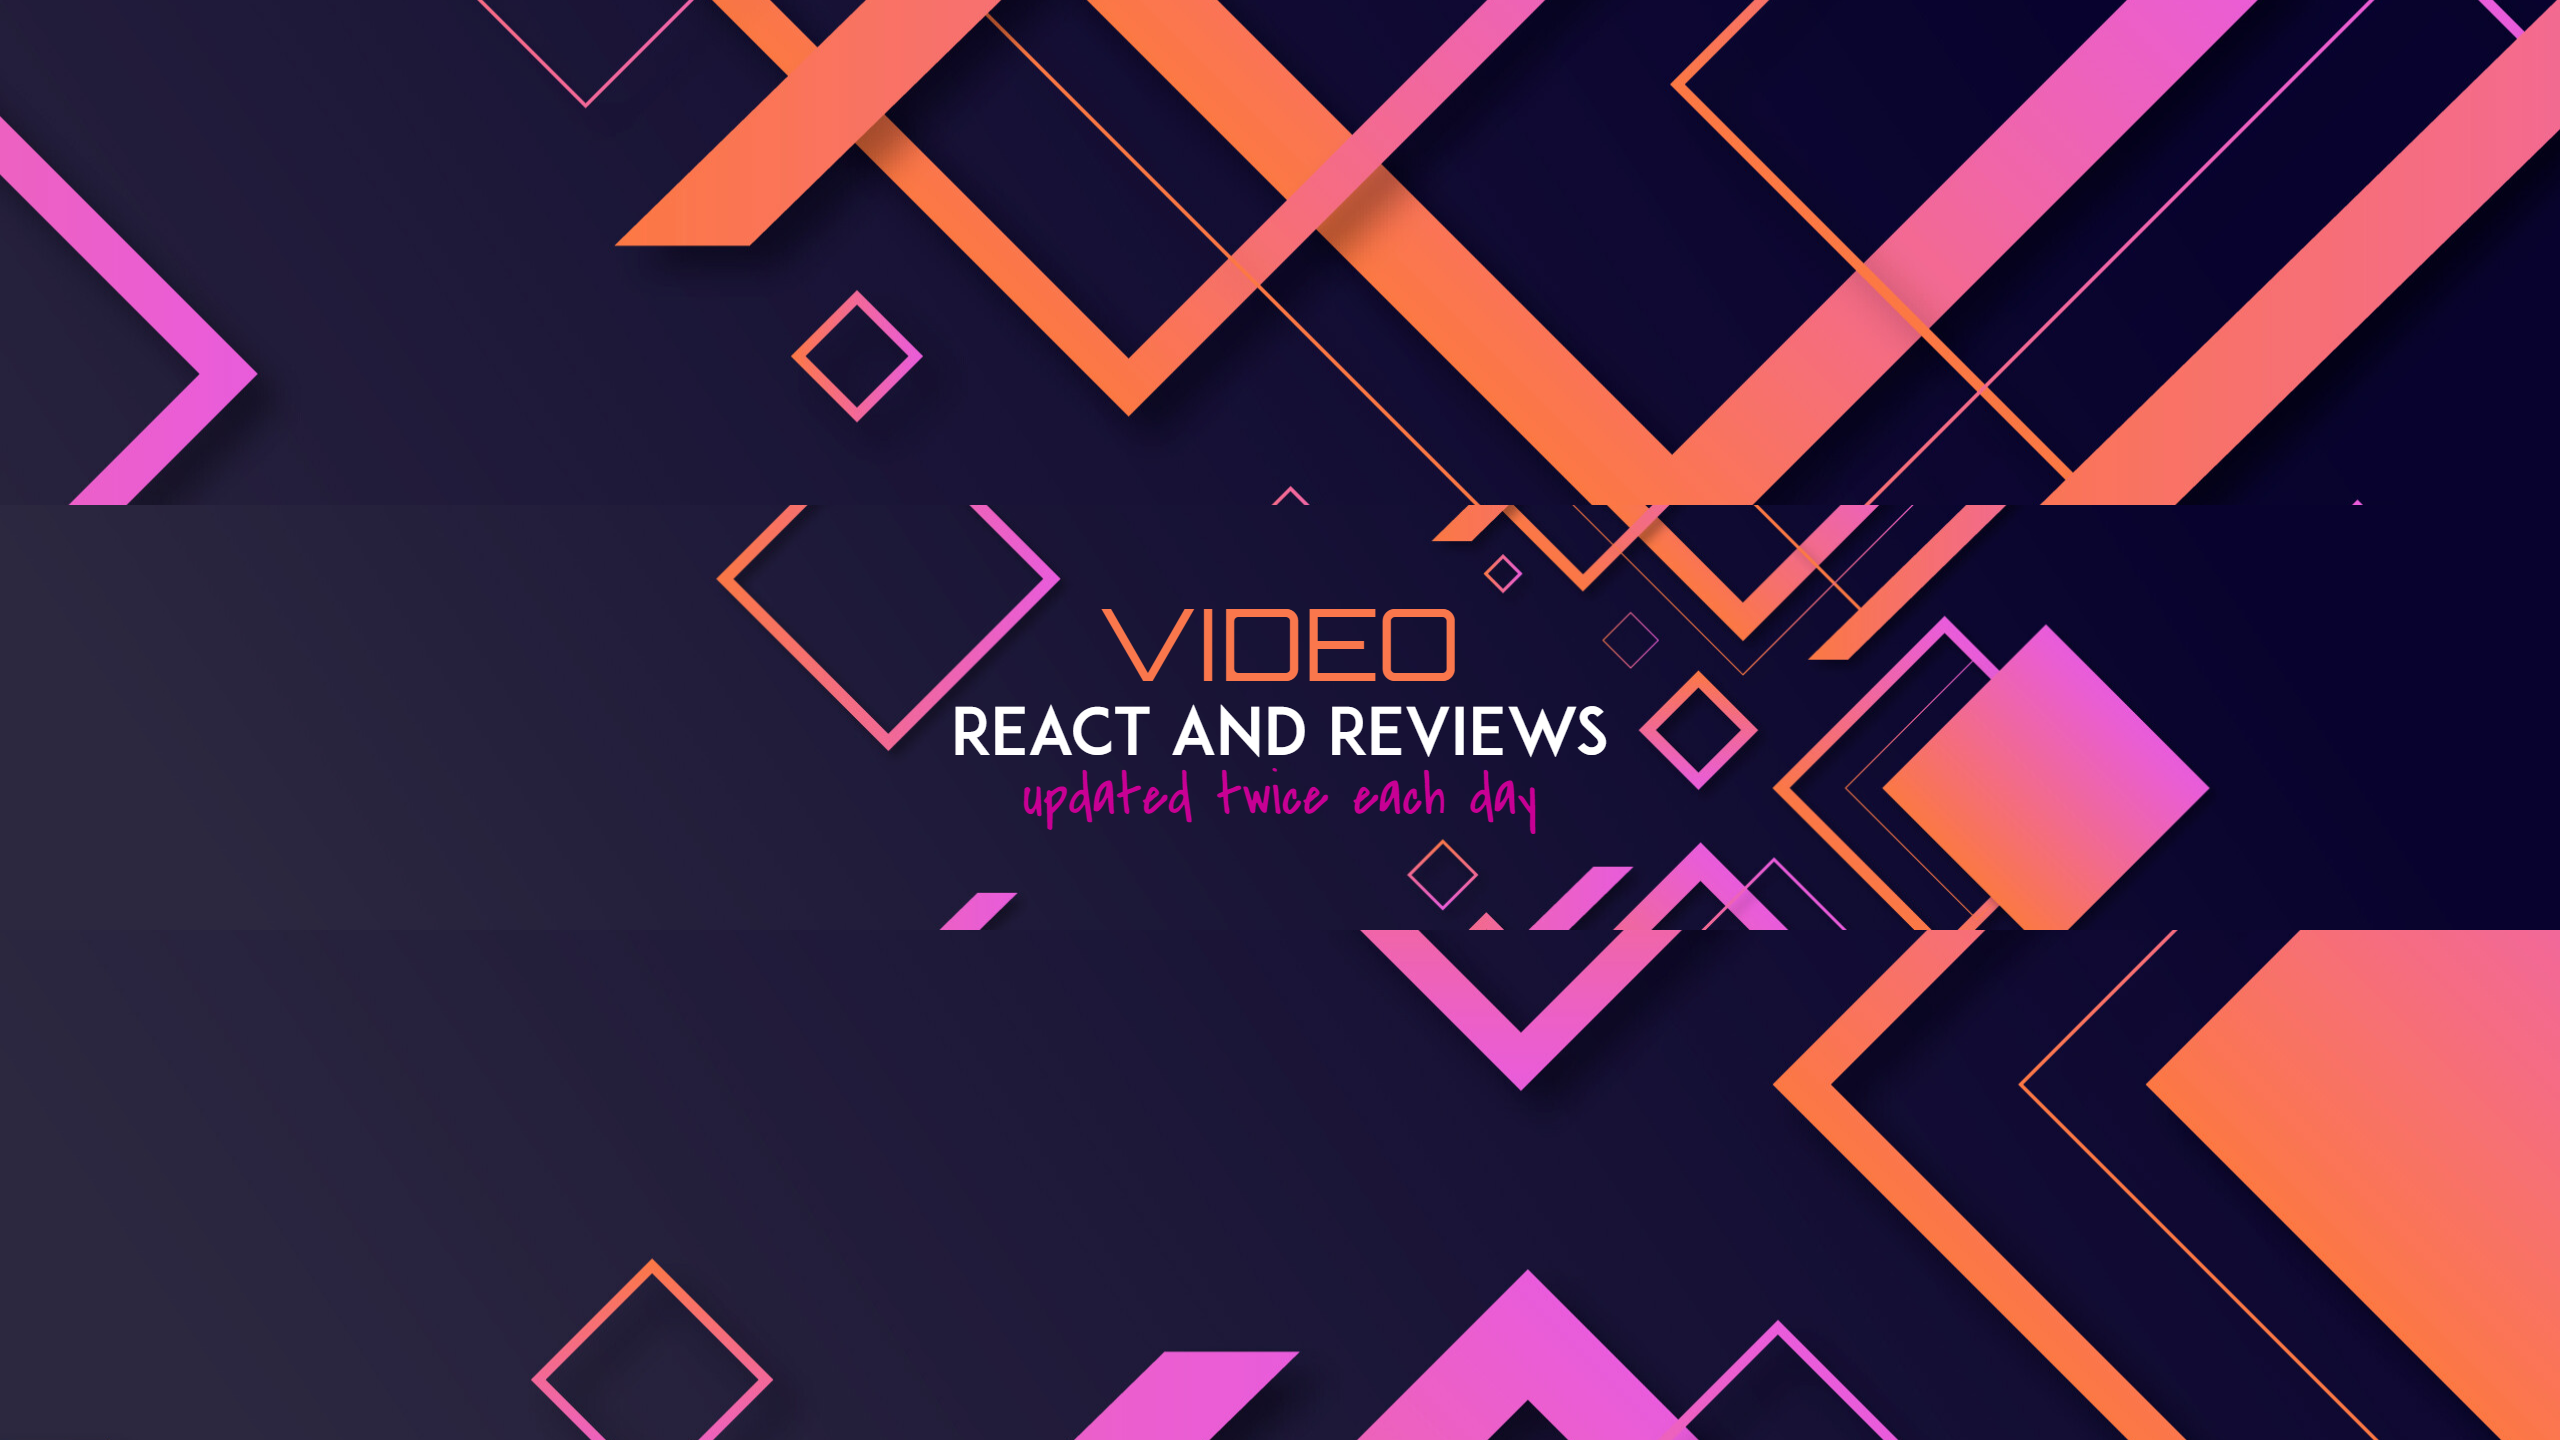 Youtube Video React Reviews Simple Design  Template